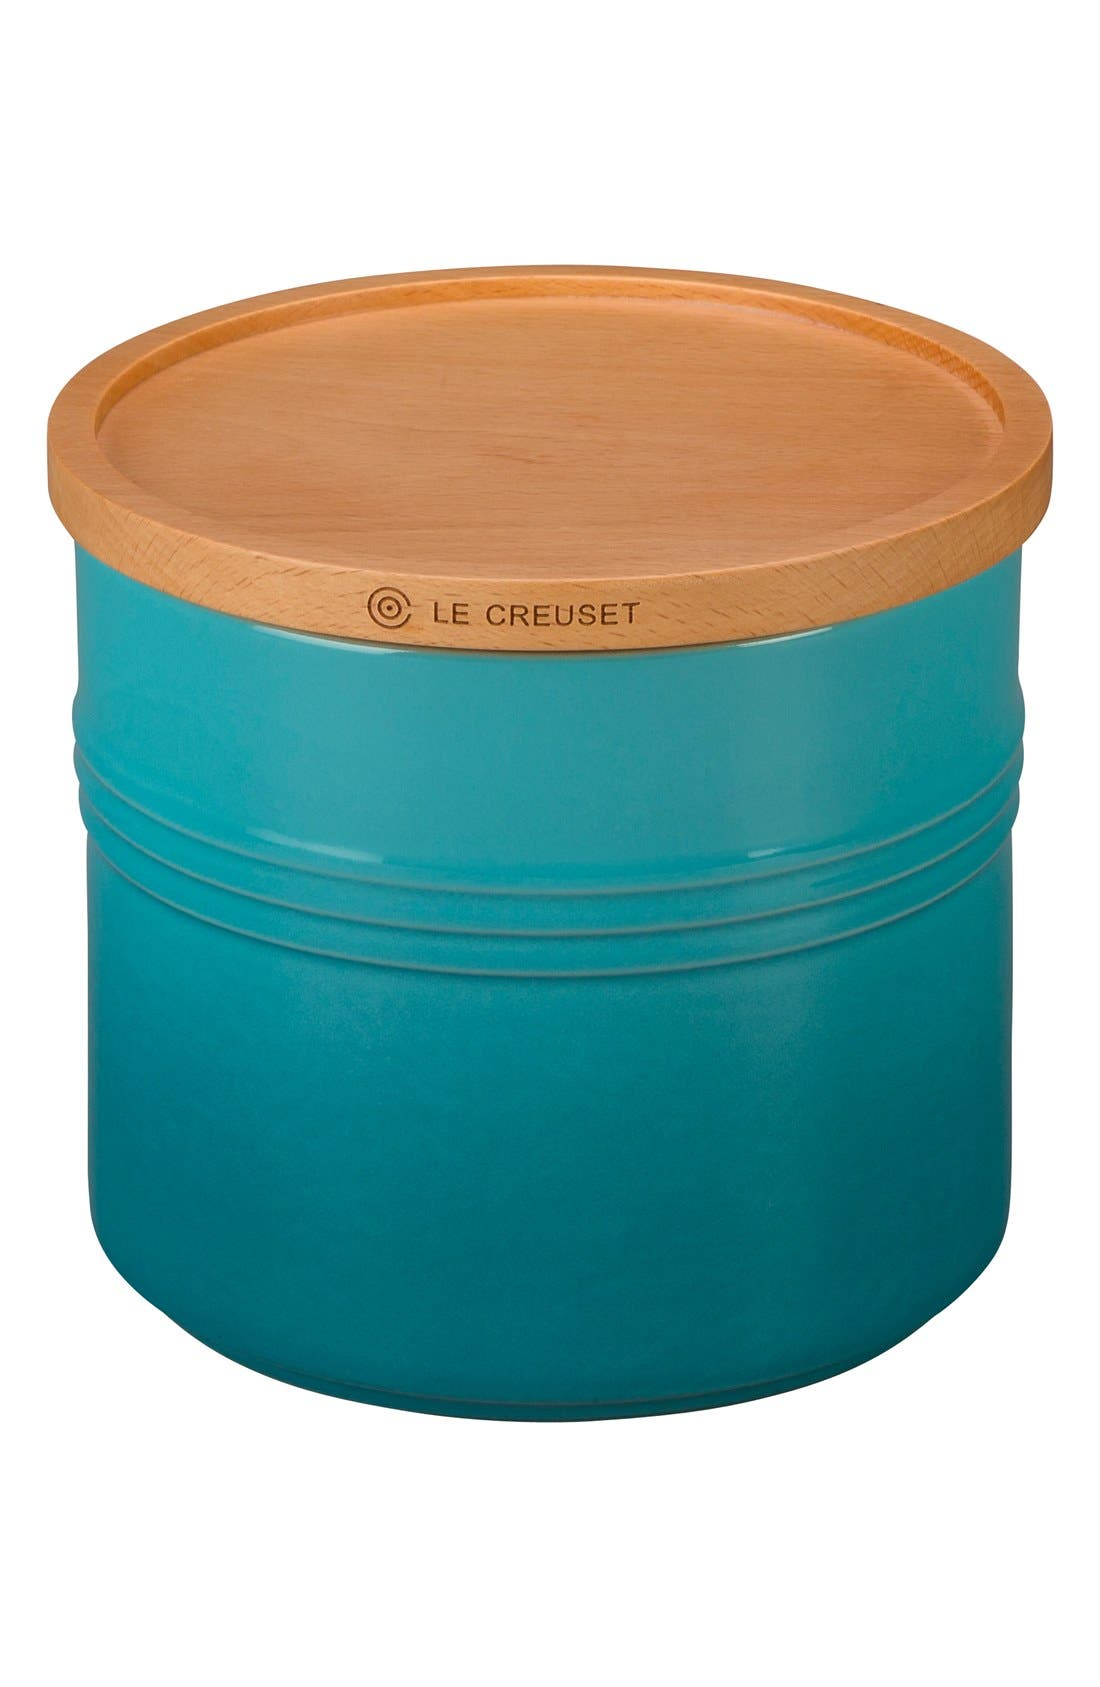 Main Image - Le Creuset Glazed Stoneware 1 1/2 Quart Storage Canister with Wooden Lid